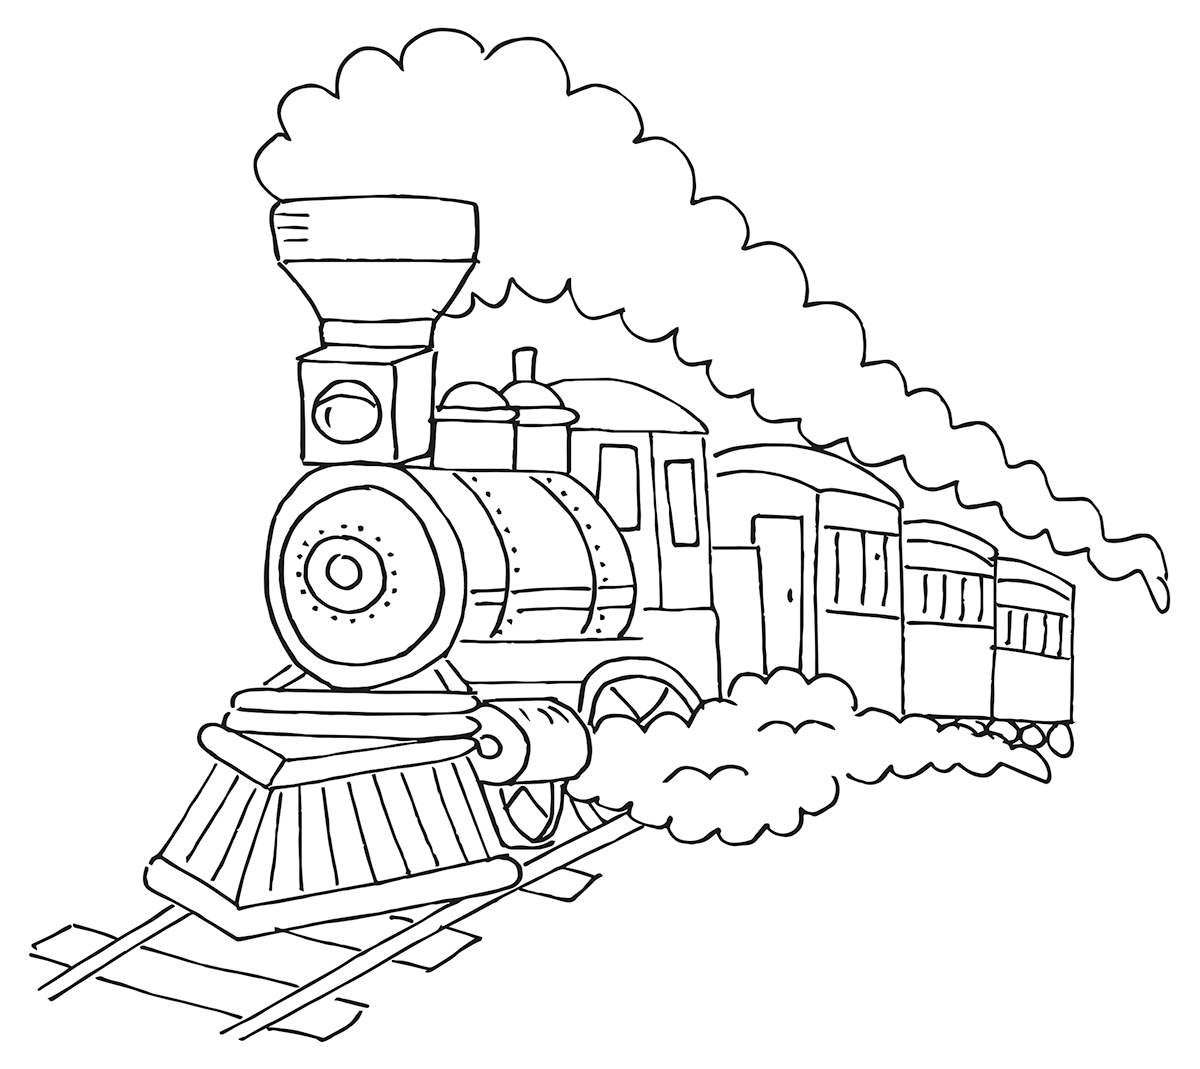 how to draw a steam engine train how to draw a classic steam locomotive from scratch how train draw steam to engine a